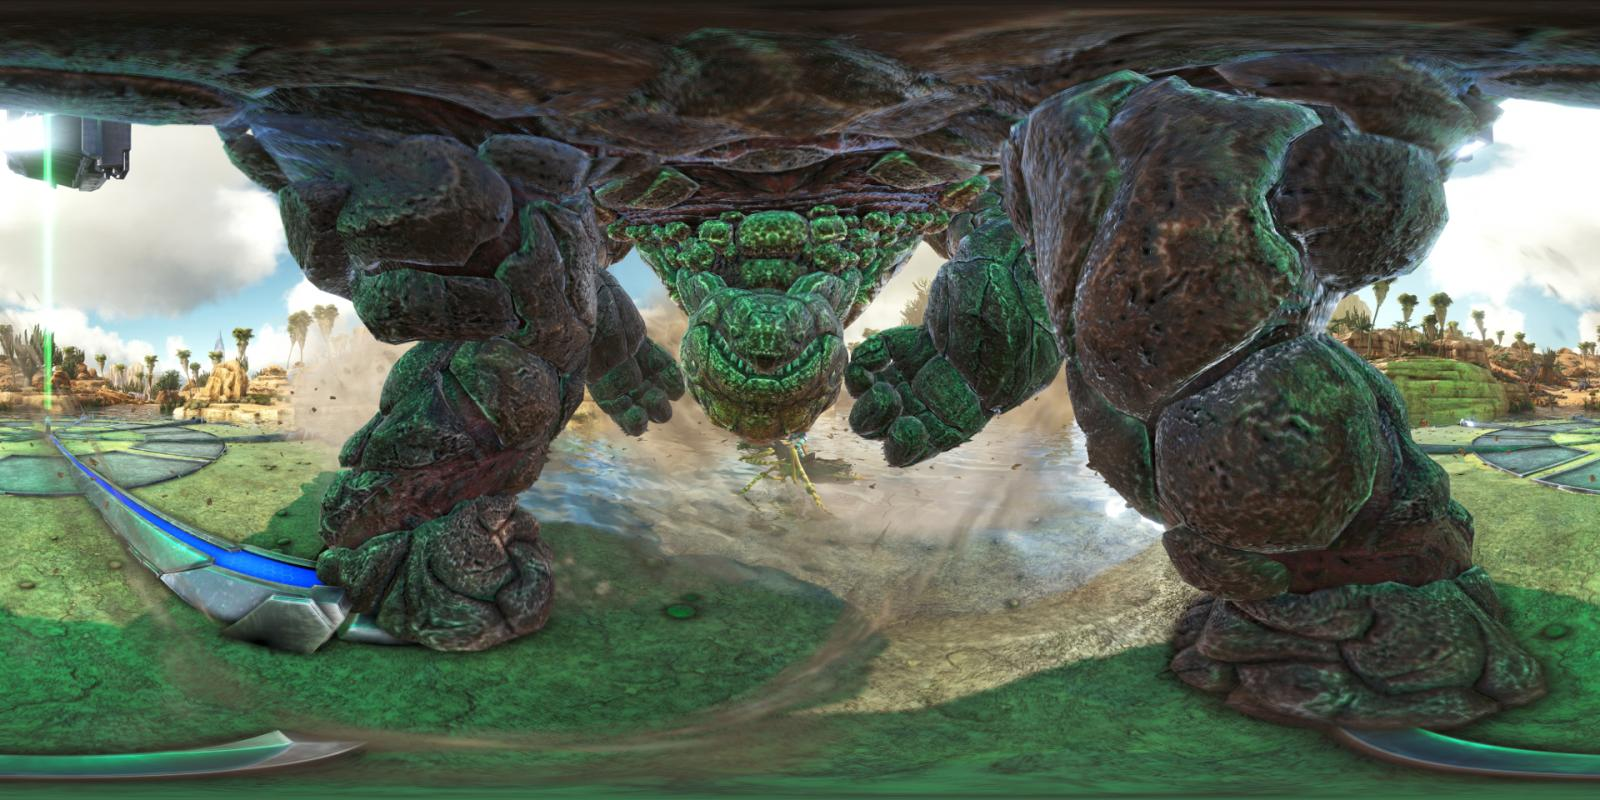 large.5a220996c67d2_Vakarian-UndertheStone-Panoramic360Steroscopic3D.jpg